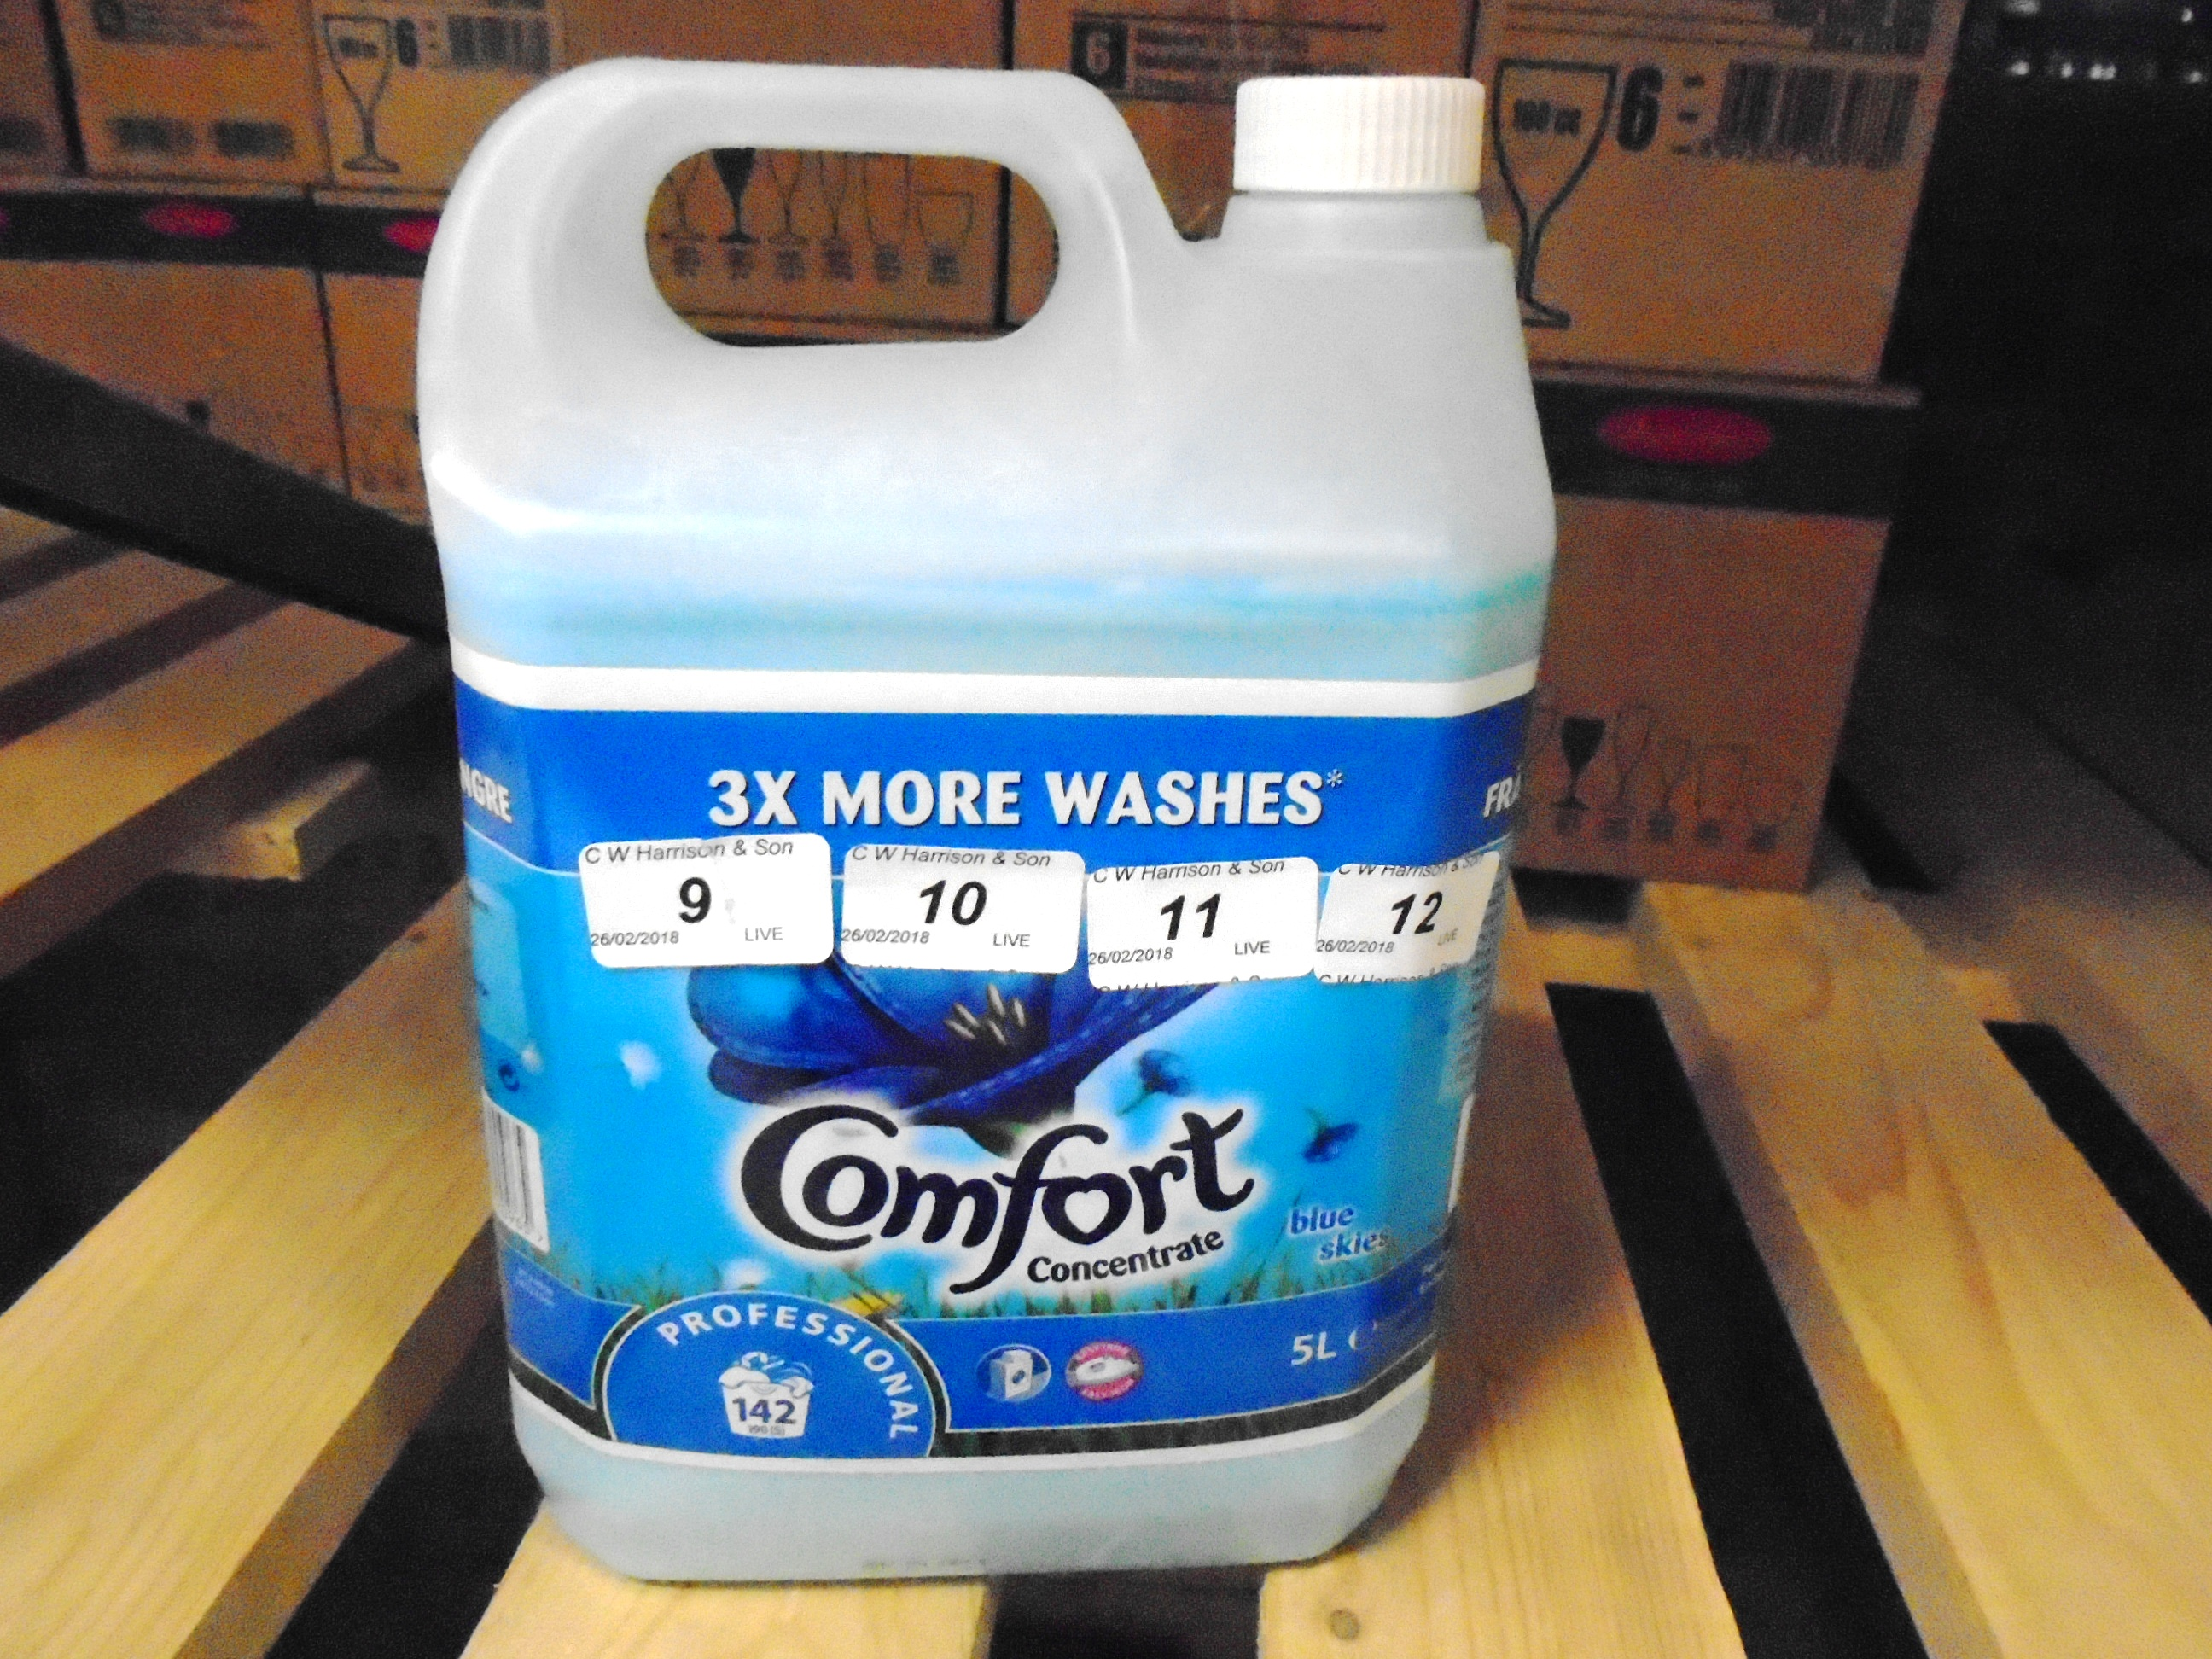 Lot 11 - 10 x 5 litre tubs of Comfort concentrate blue skies fabric conditioner